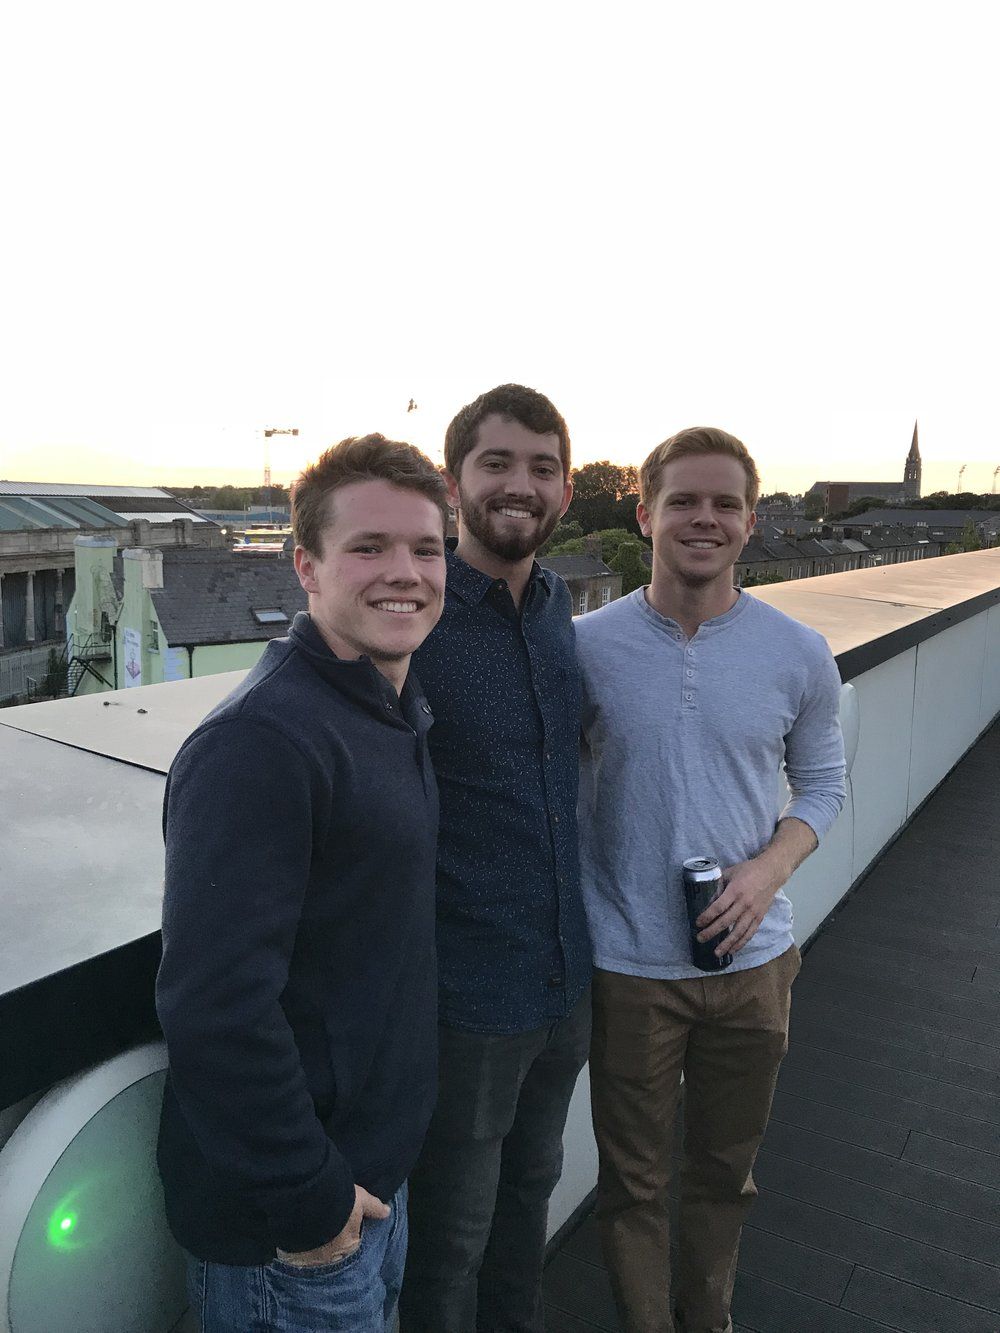 Jacob (left) with Sage Corps fellows Ethan and Connor.